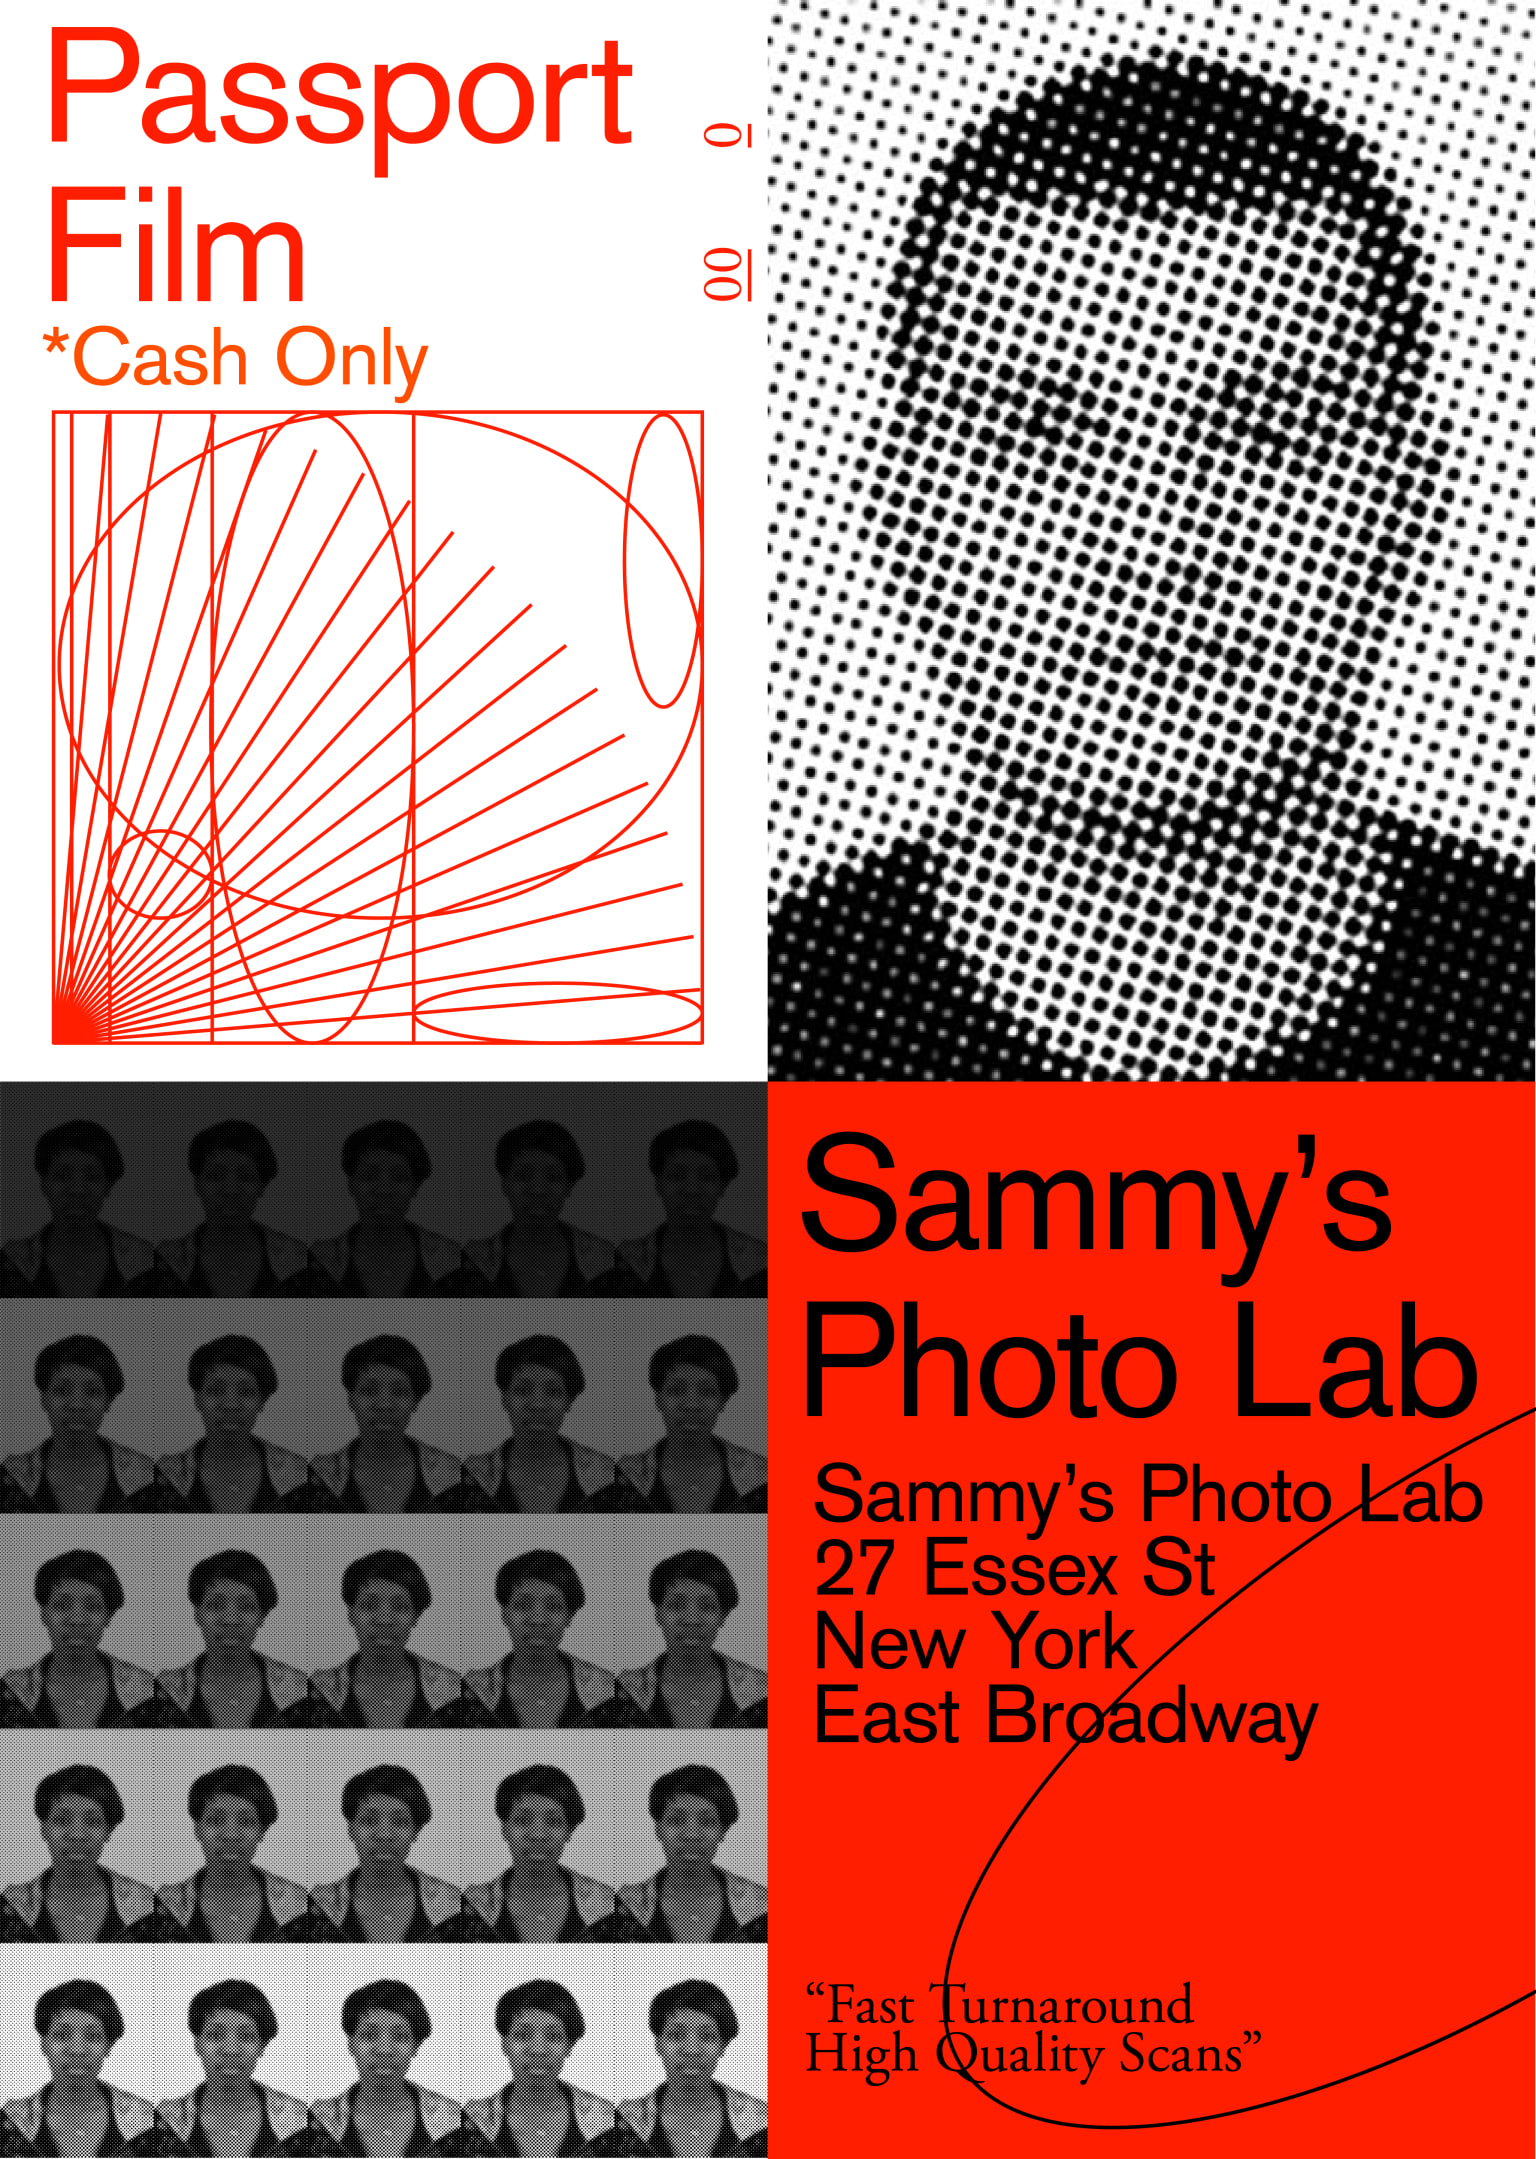 Sammy's Photo Lab